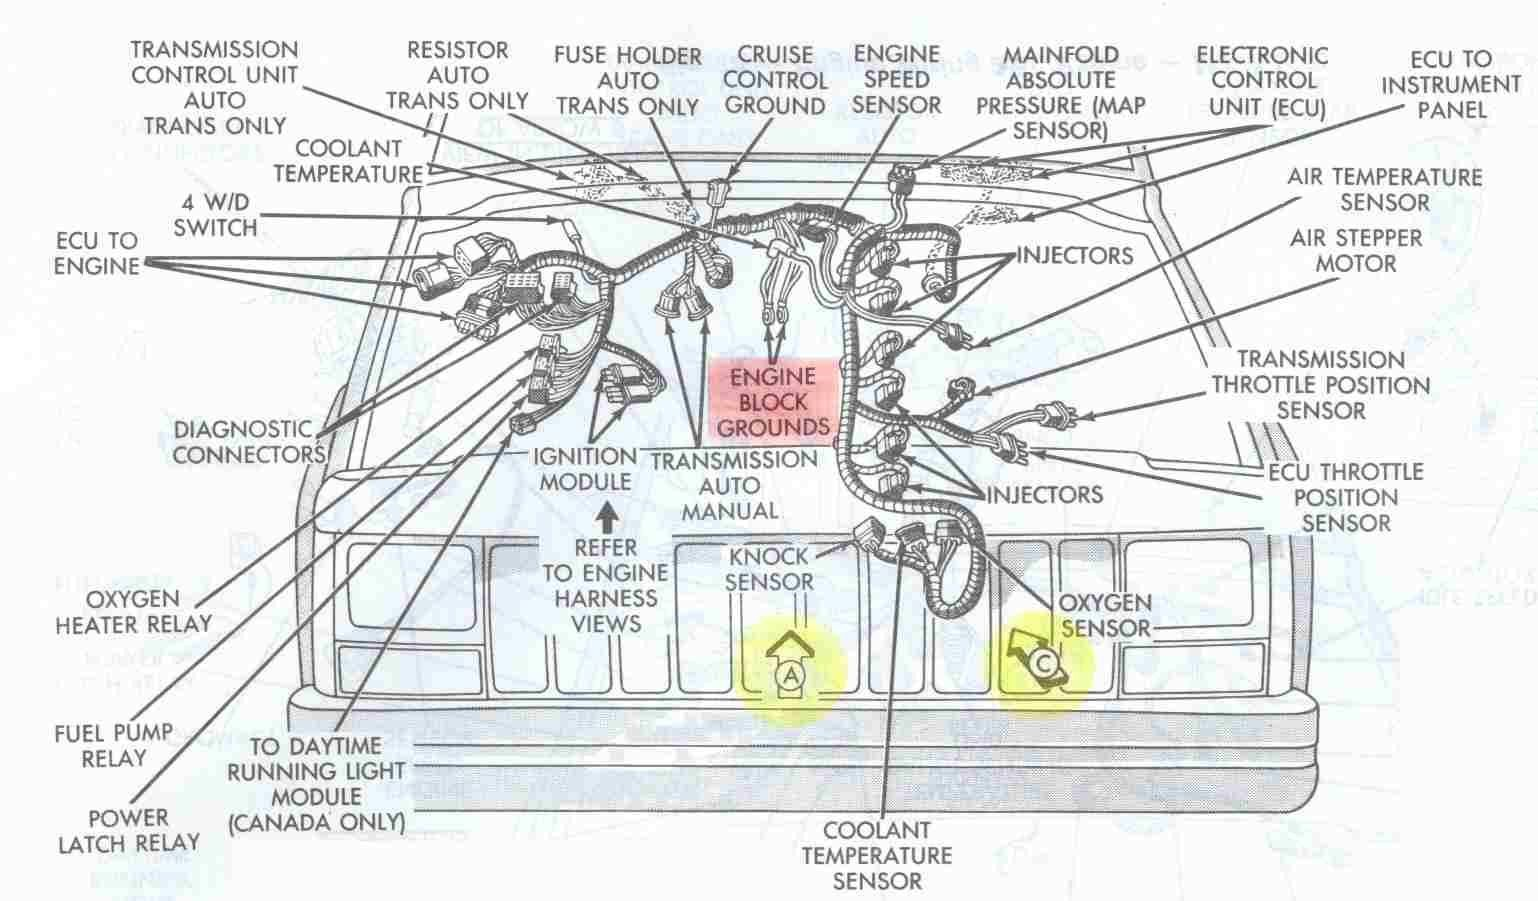 2001 Jeep Grand Cherokee Engine Diagram Wiring Library 99 Jeep Cherokee Electrical Schematics